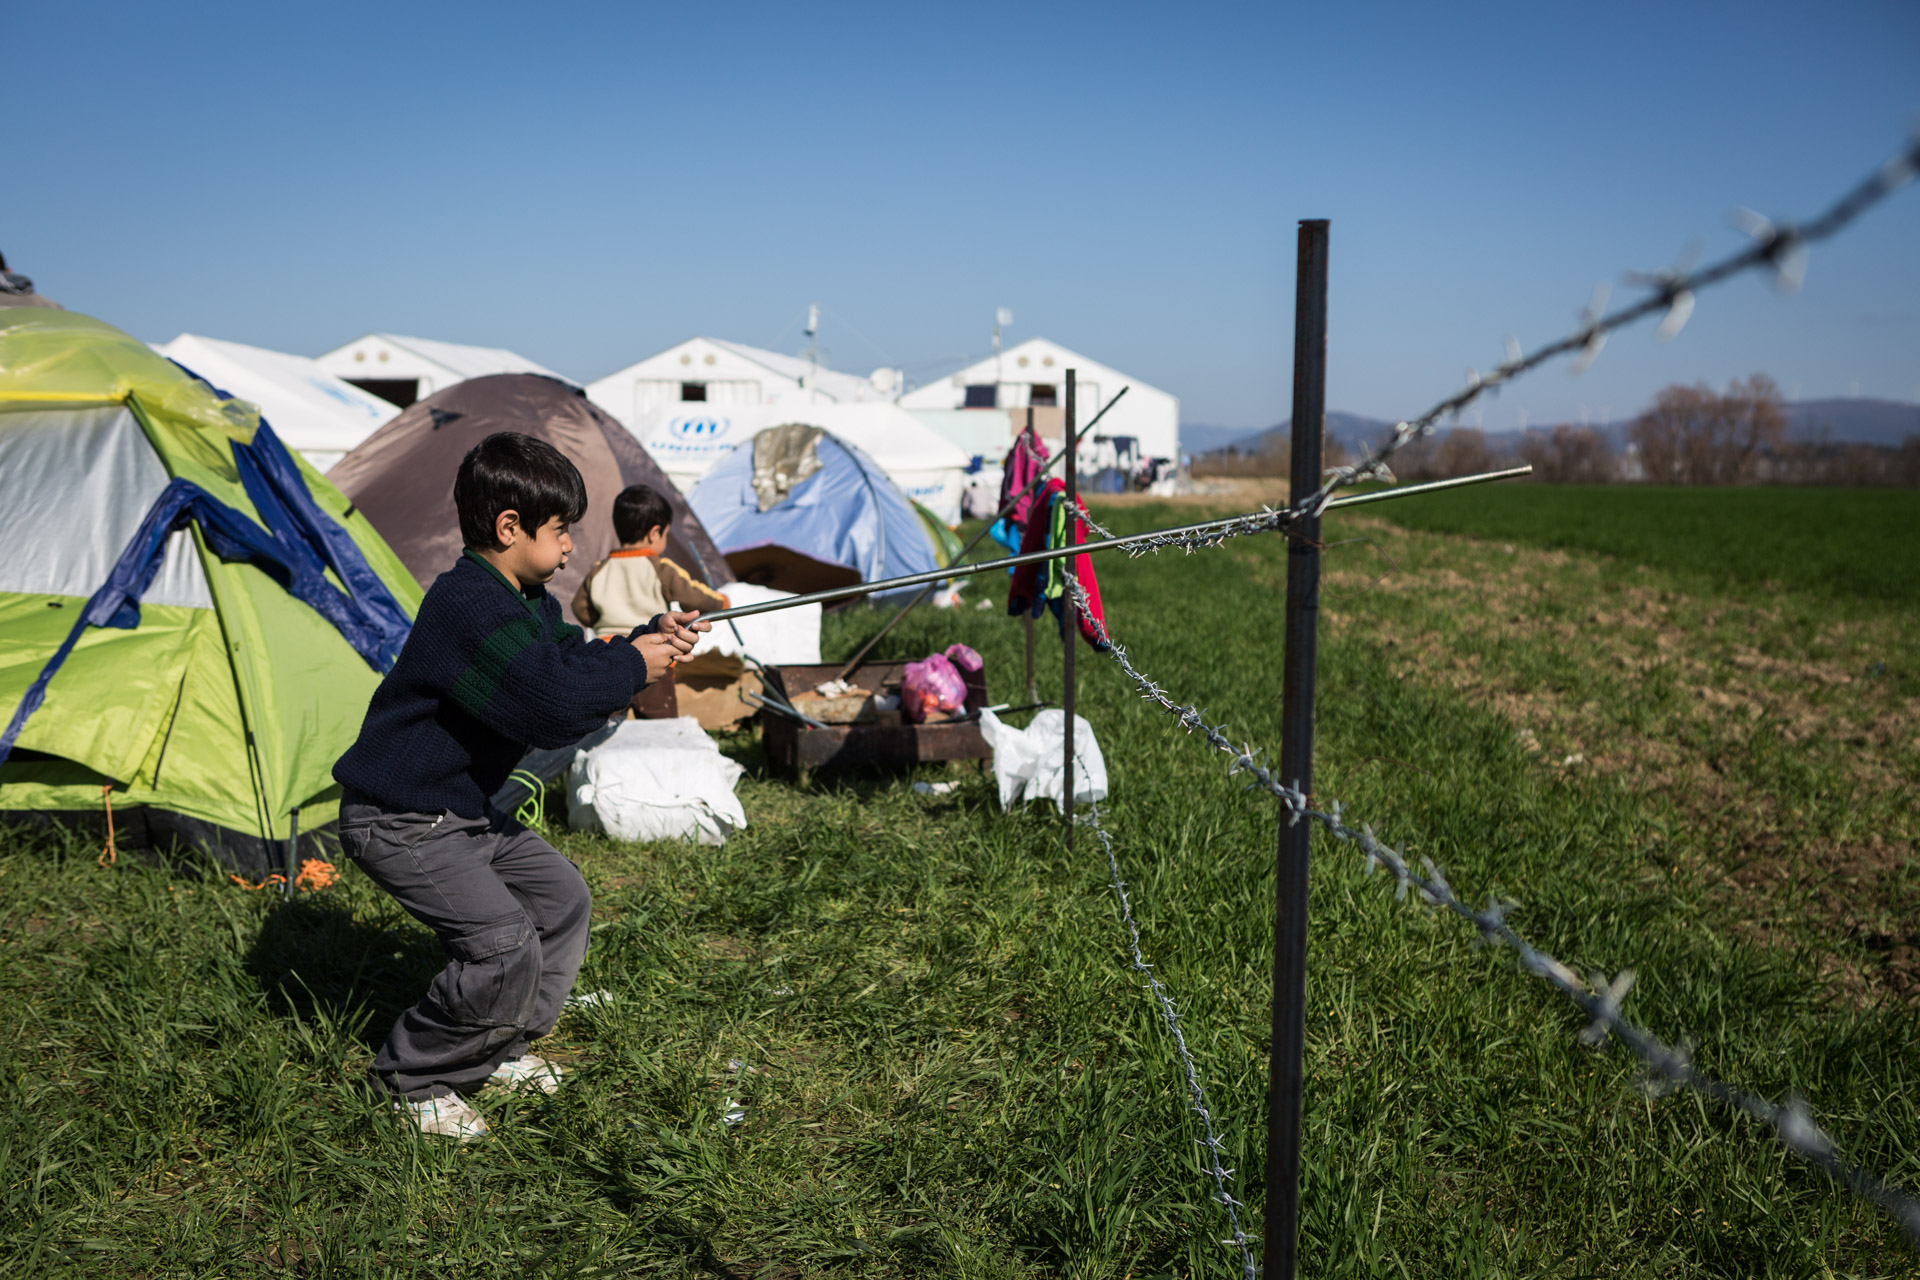 Baker, Basem's oldest son, plays at a fence in Idomeni.